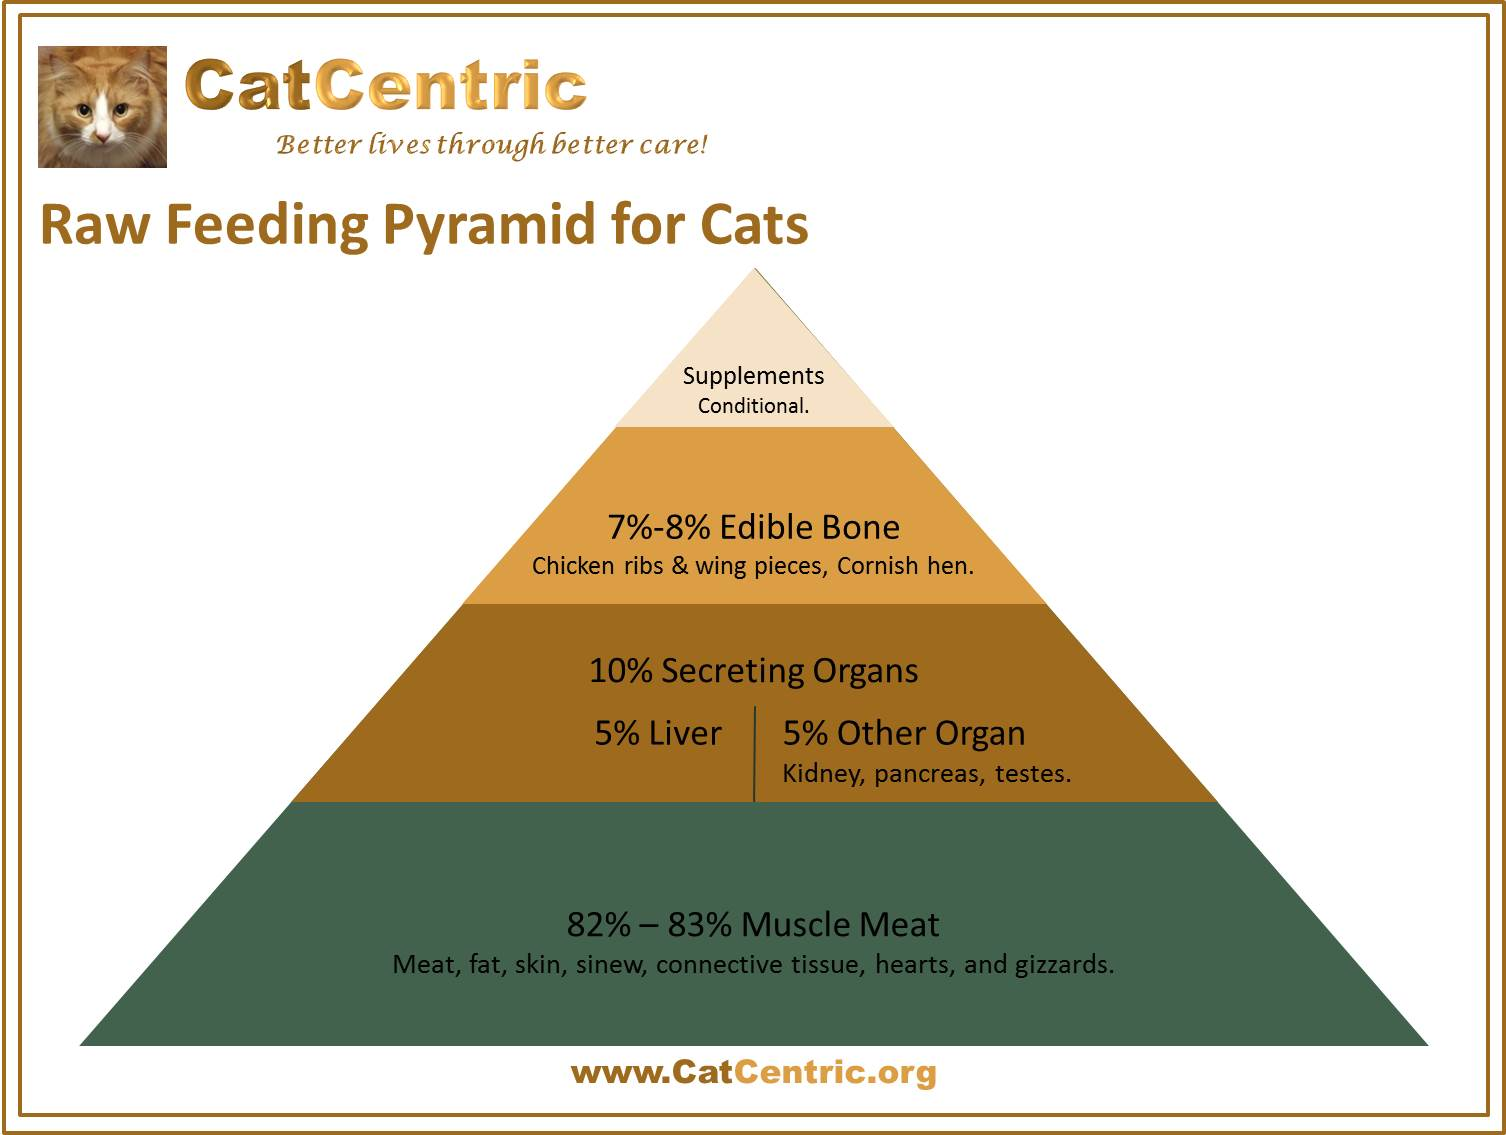 Raw Feeding Pyramid